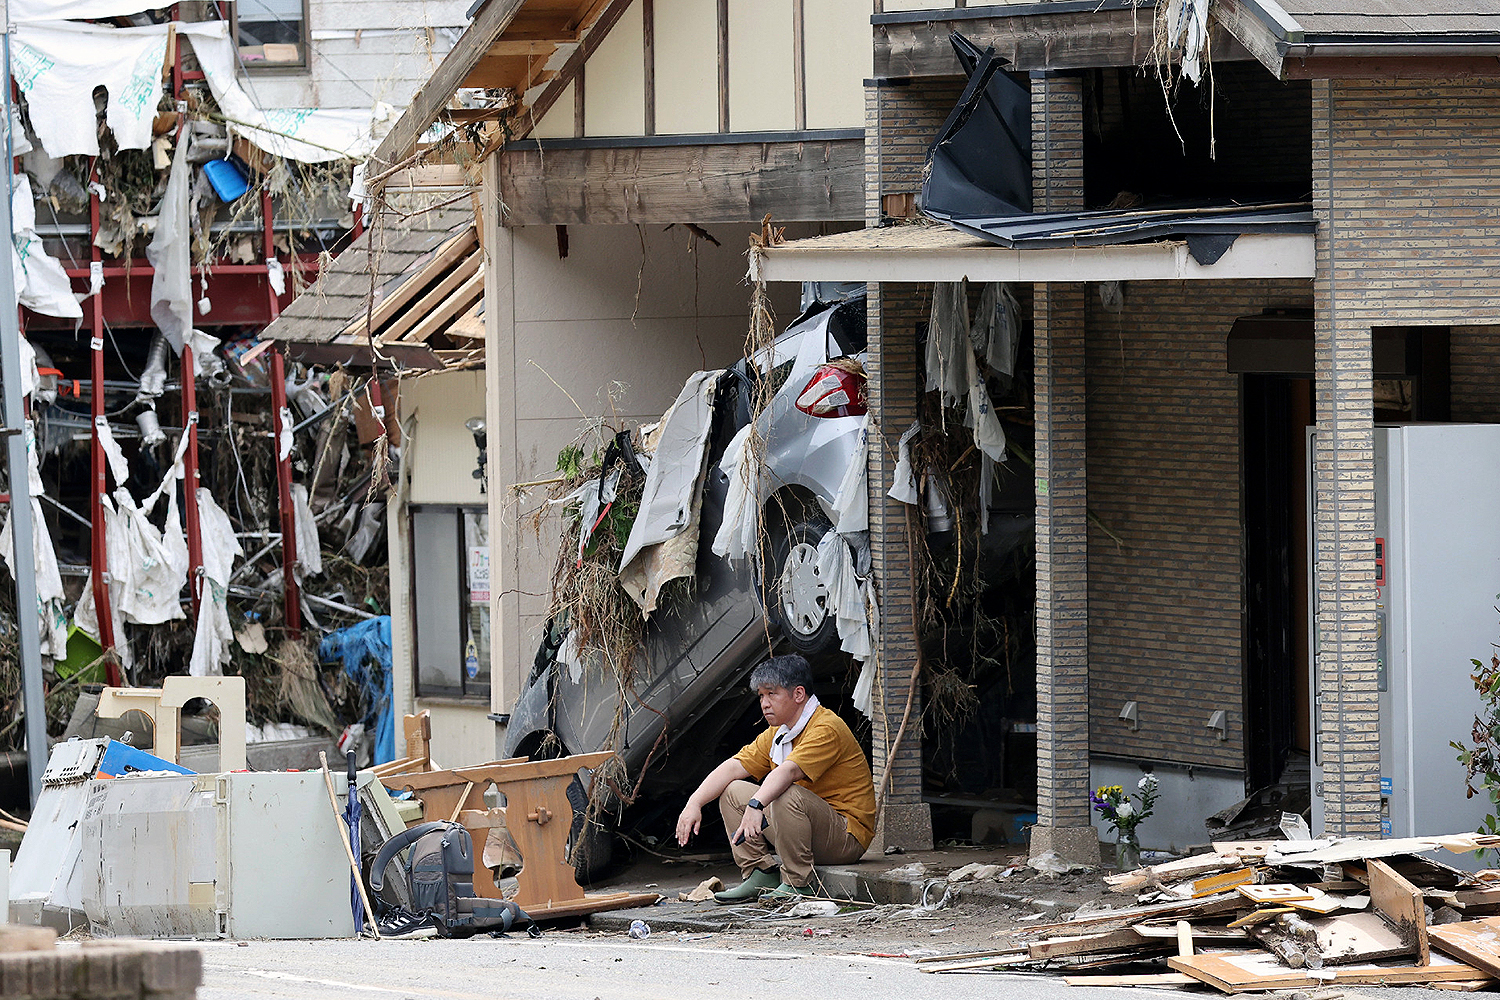 A man sits outside the house of his aunt, who died from flooding of the Kuma River in Yatsushiro, Kumamoto Prefecture, Japan, on July 8. STR/JIJI PRESS/AFP via Getty Images